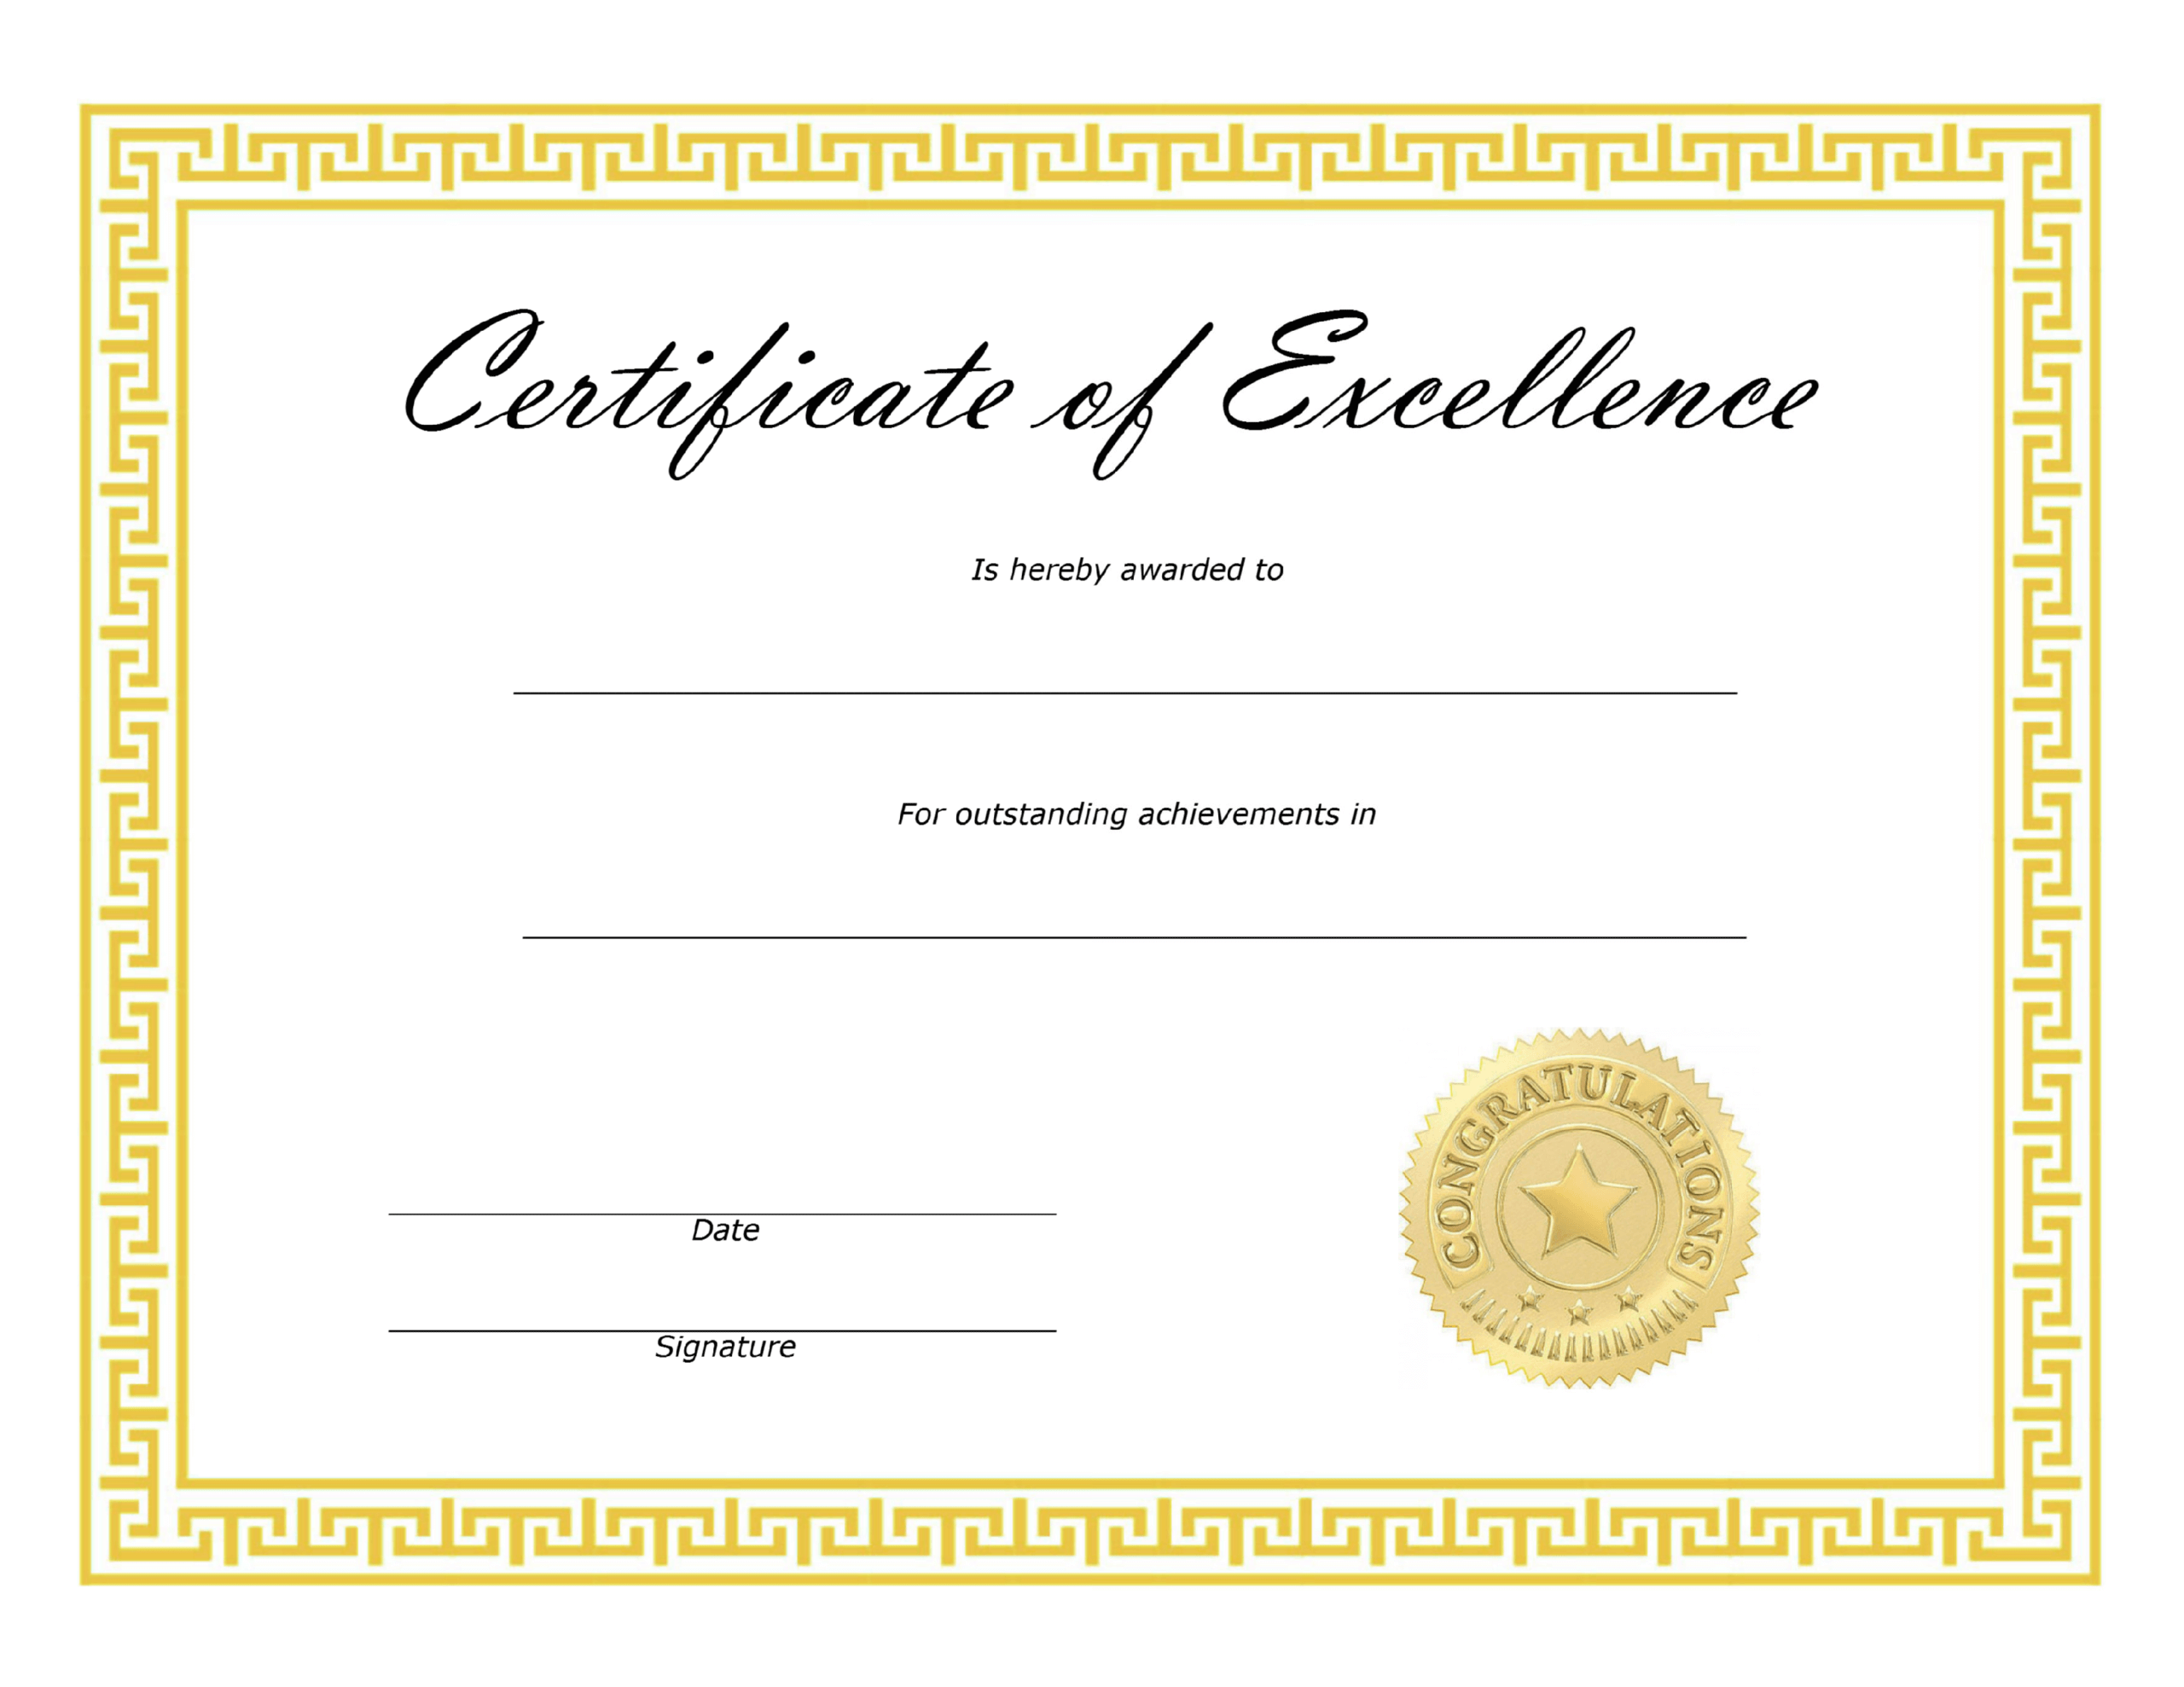 ❤️ Free Sample Certificate Of Excellence Templates❤️ With Free Certificate Of Excellence Template